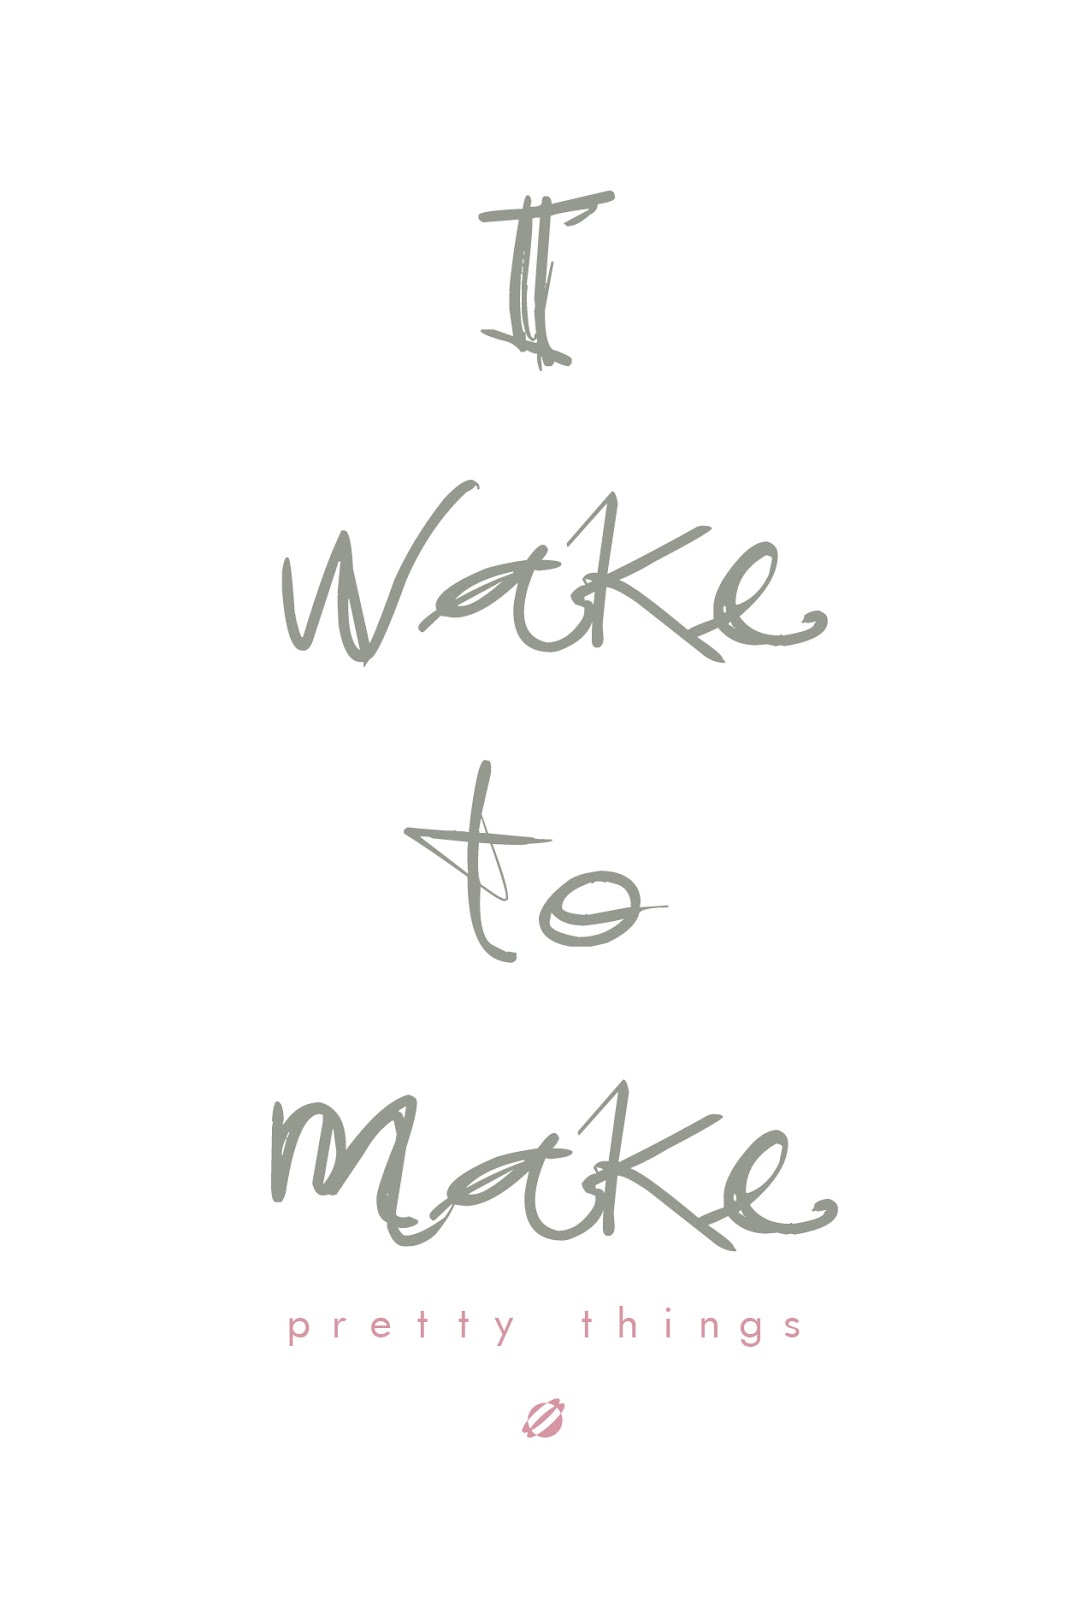 LostBumblebee ©2014 I Wake to Make Pretty things Free Printable Personal Use Only.